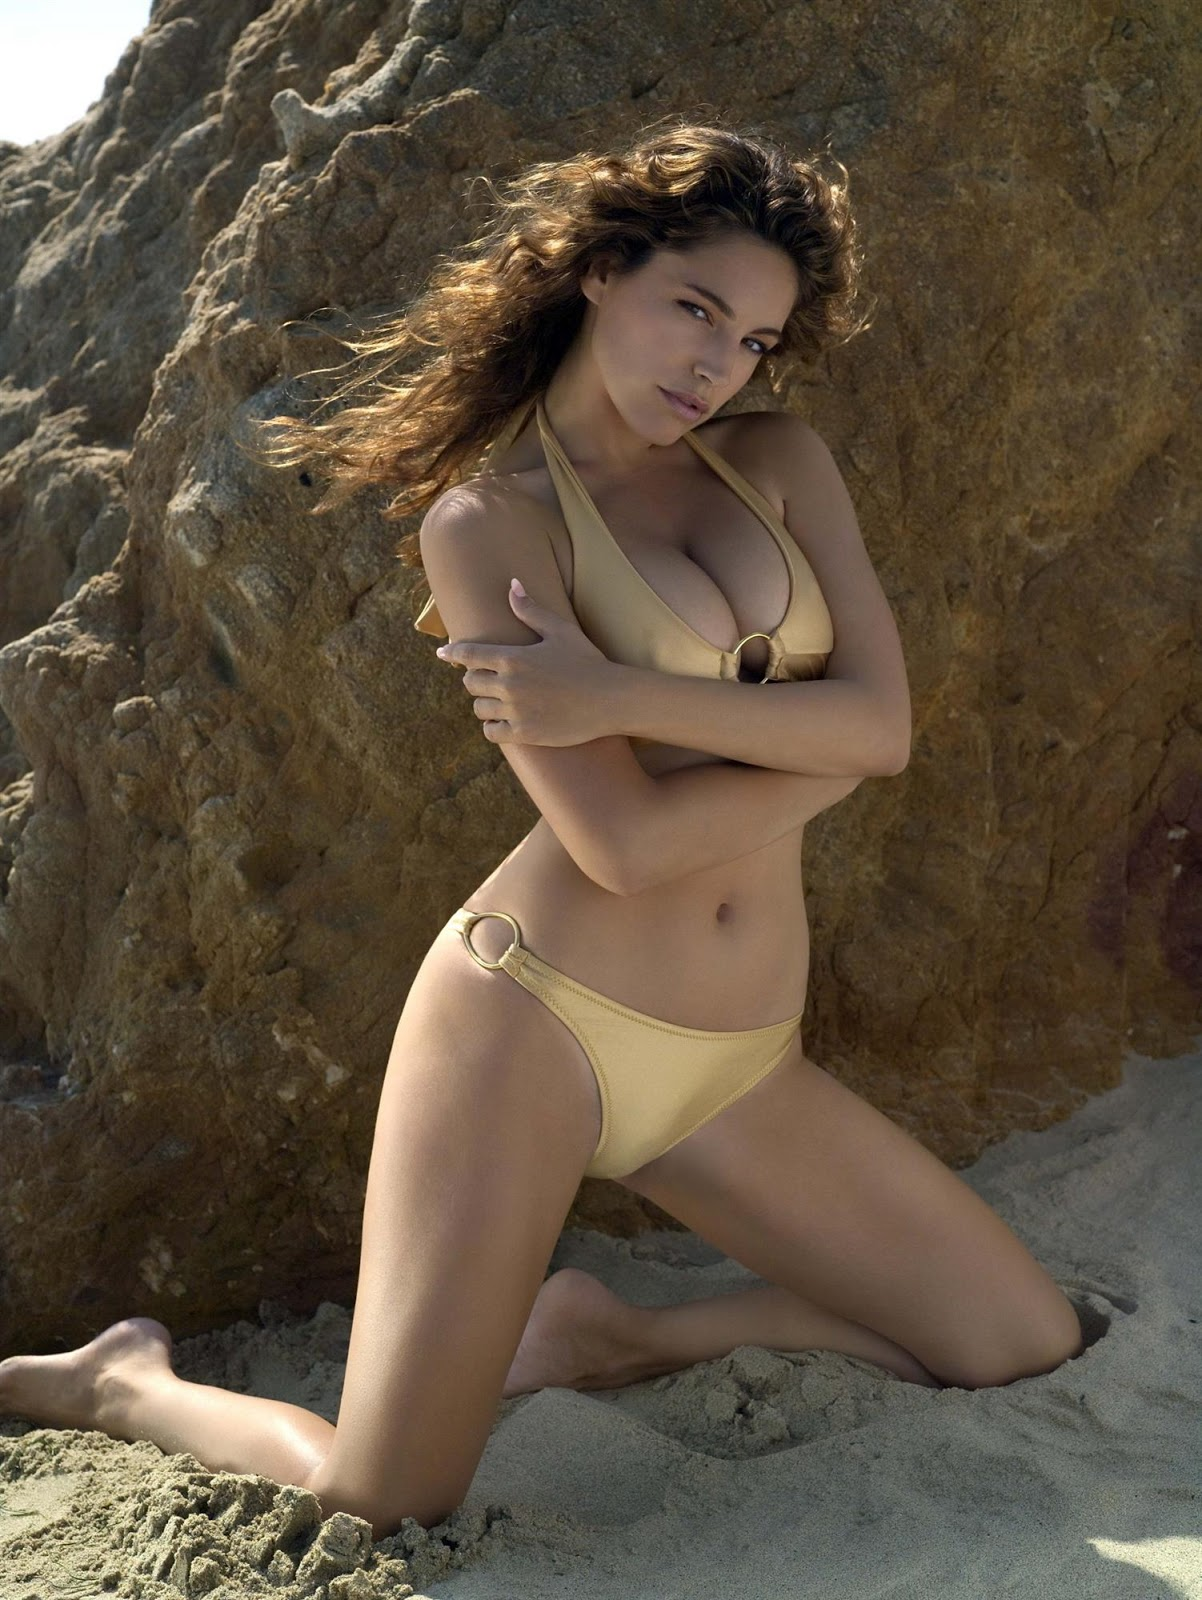 Kelly+Brook+2007+Calendar+1 18 Best Kelly Brook Photos in Swimwear